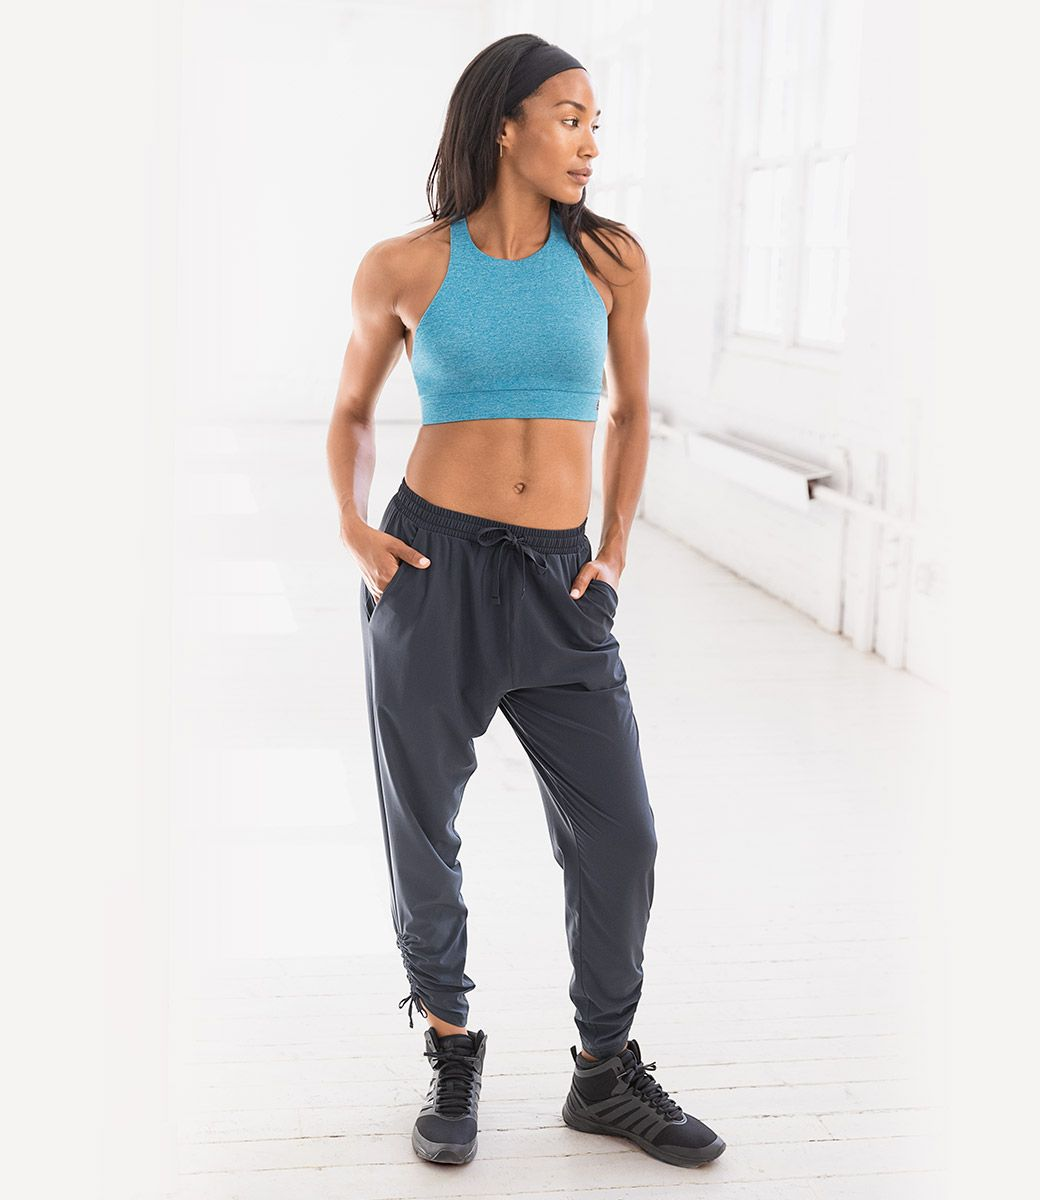 New Balance US Womens April Studio Primary Look,